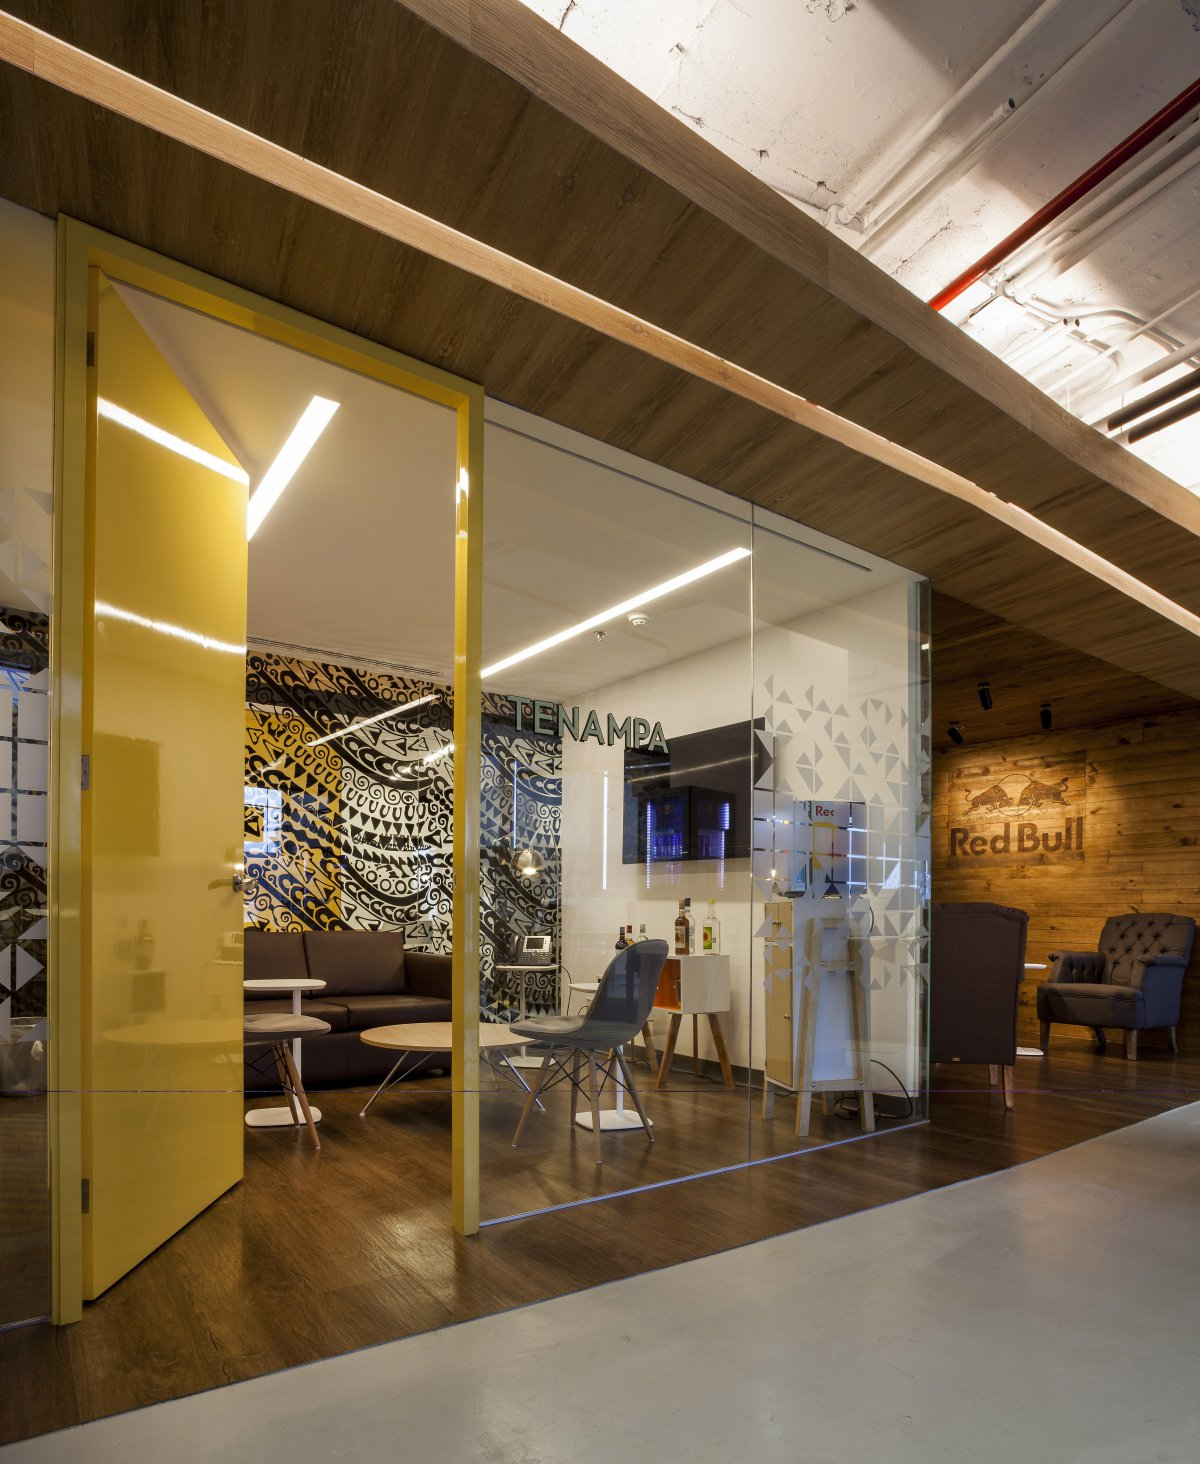 oficinas-red-bull-space-arquitectura-workplace-4